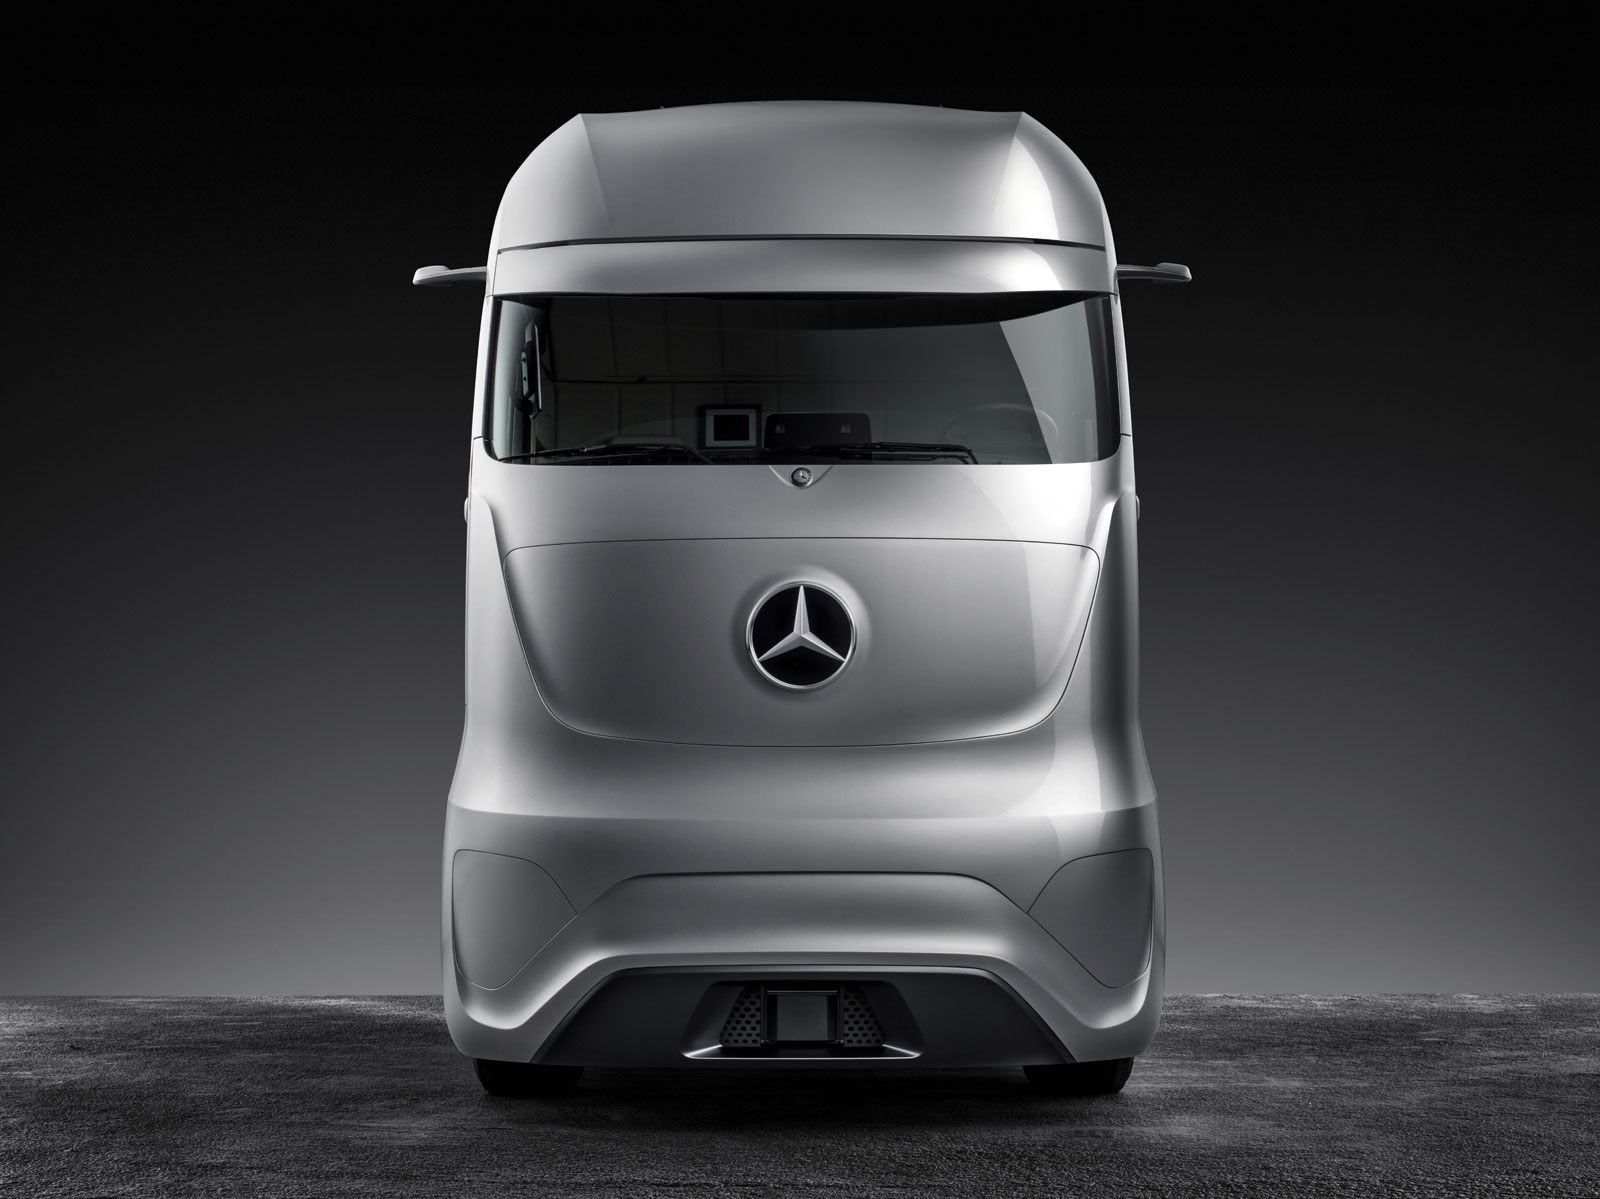 Mercedes Benz Future Truck 2025 Concept Car Body Design